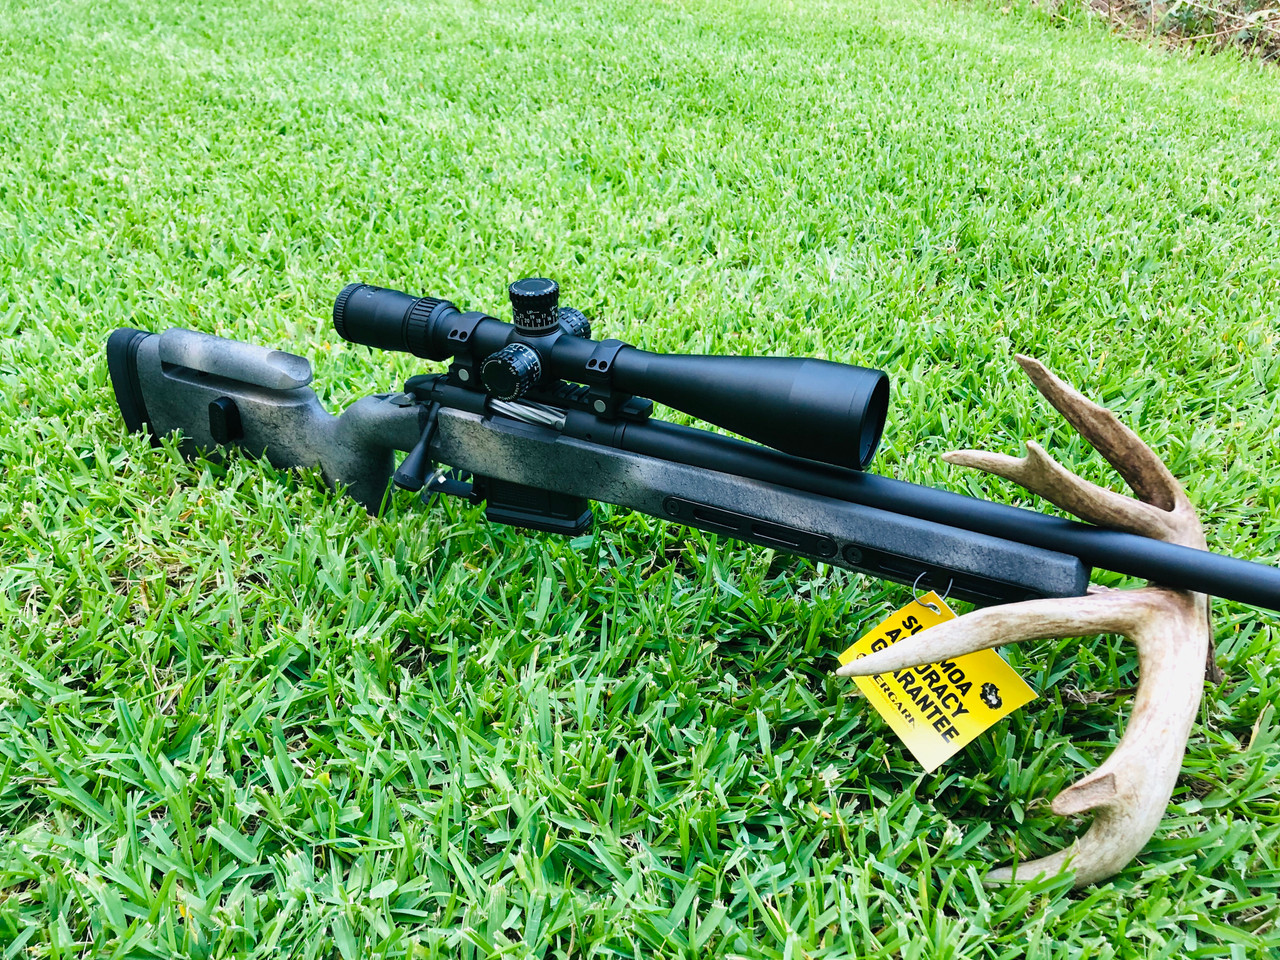 Bergara Premier Ridgeback Package in 6.5 Creedmoor and Nikon Black FX1000 6-24x50SF